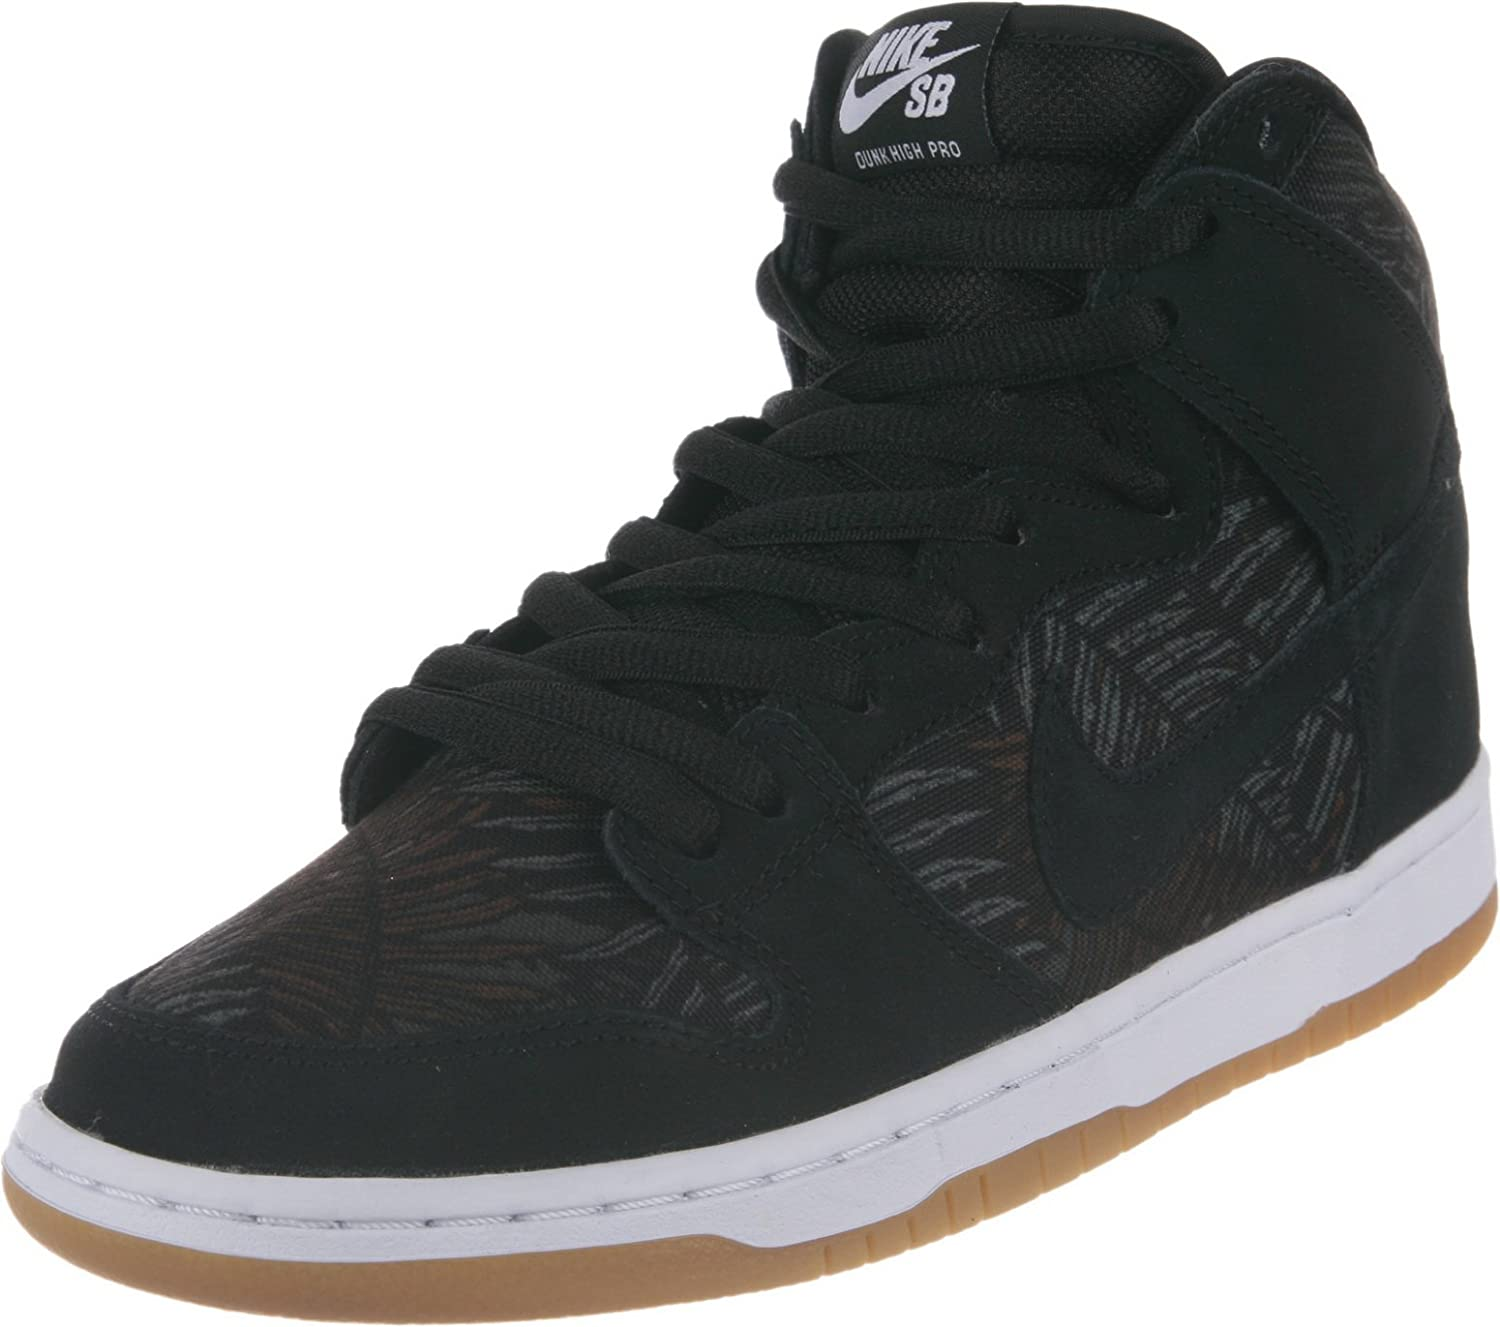 cheap for discount e5d70 41d1f ... netherlands amazon nike dunk high pro sb 305050 025 clothing e10b3 76ff9